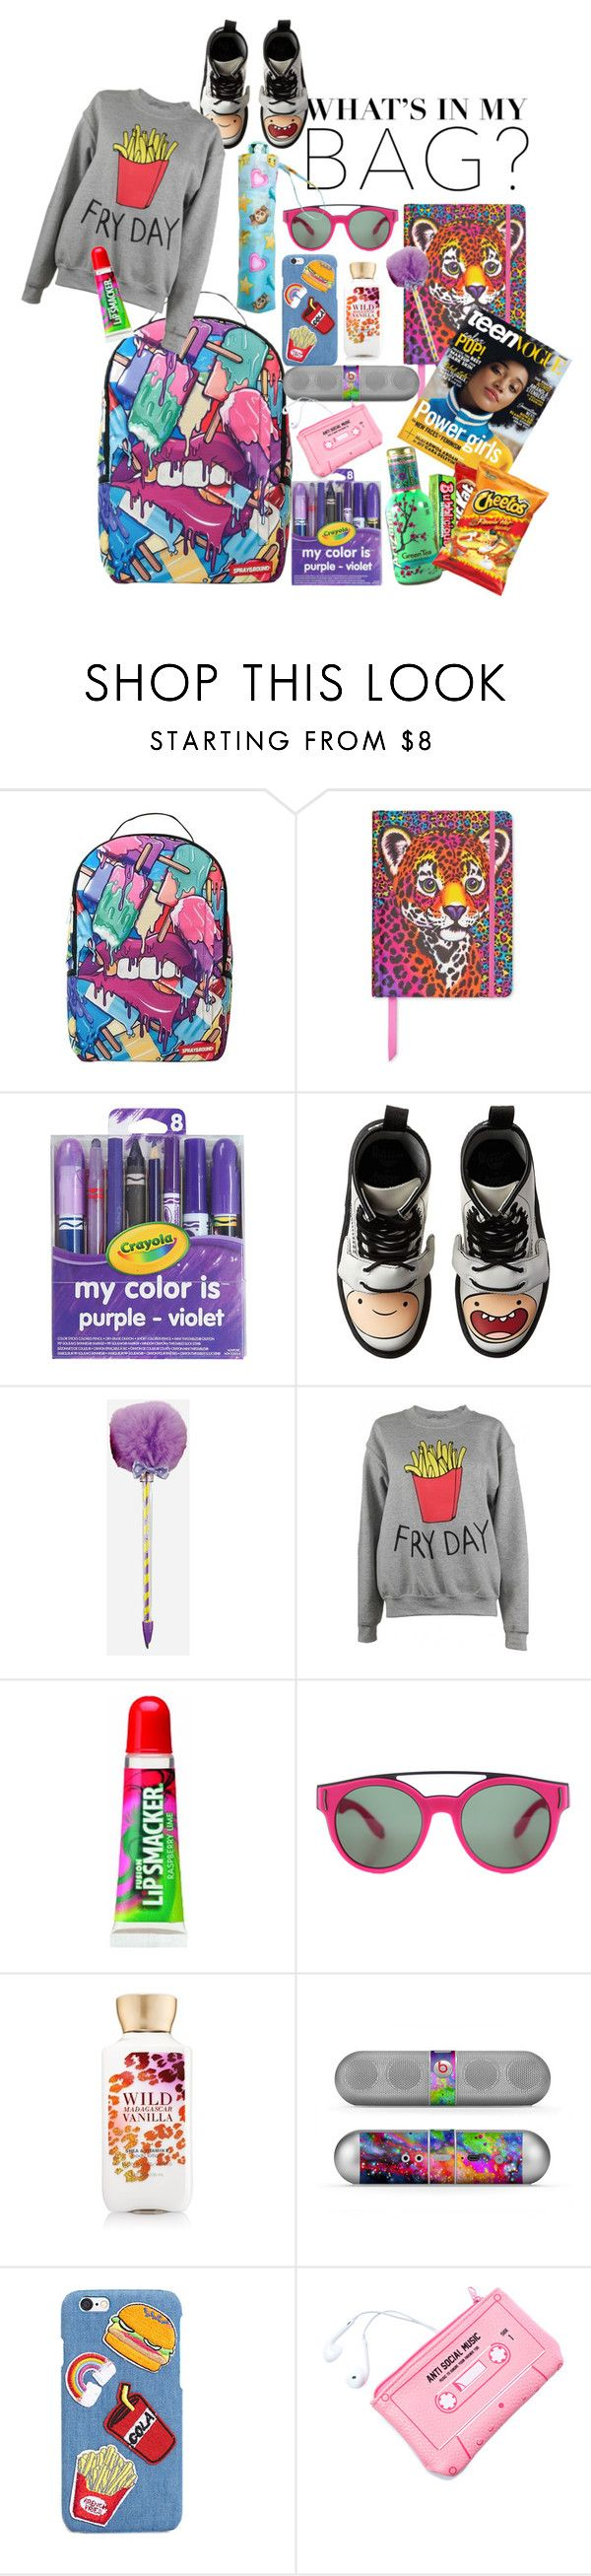 """BTW BTS LOL Wutevz"" by candice-kharhyzma-mividaloca-curry ❤ liked on Polyvore featuring Sprayground, Lisa Frank, Dr. Martens, Adolescent Clothing, Givenchy, Beats by Dr. Dre, Lazy Oaf, backpack and inmybackpack"